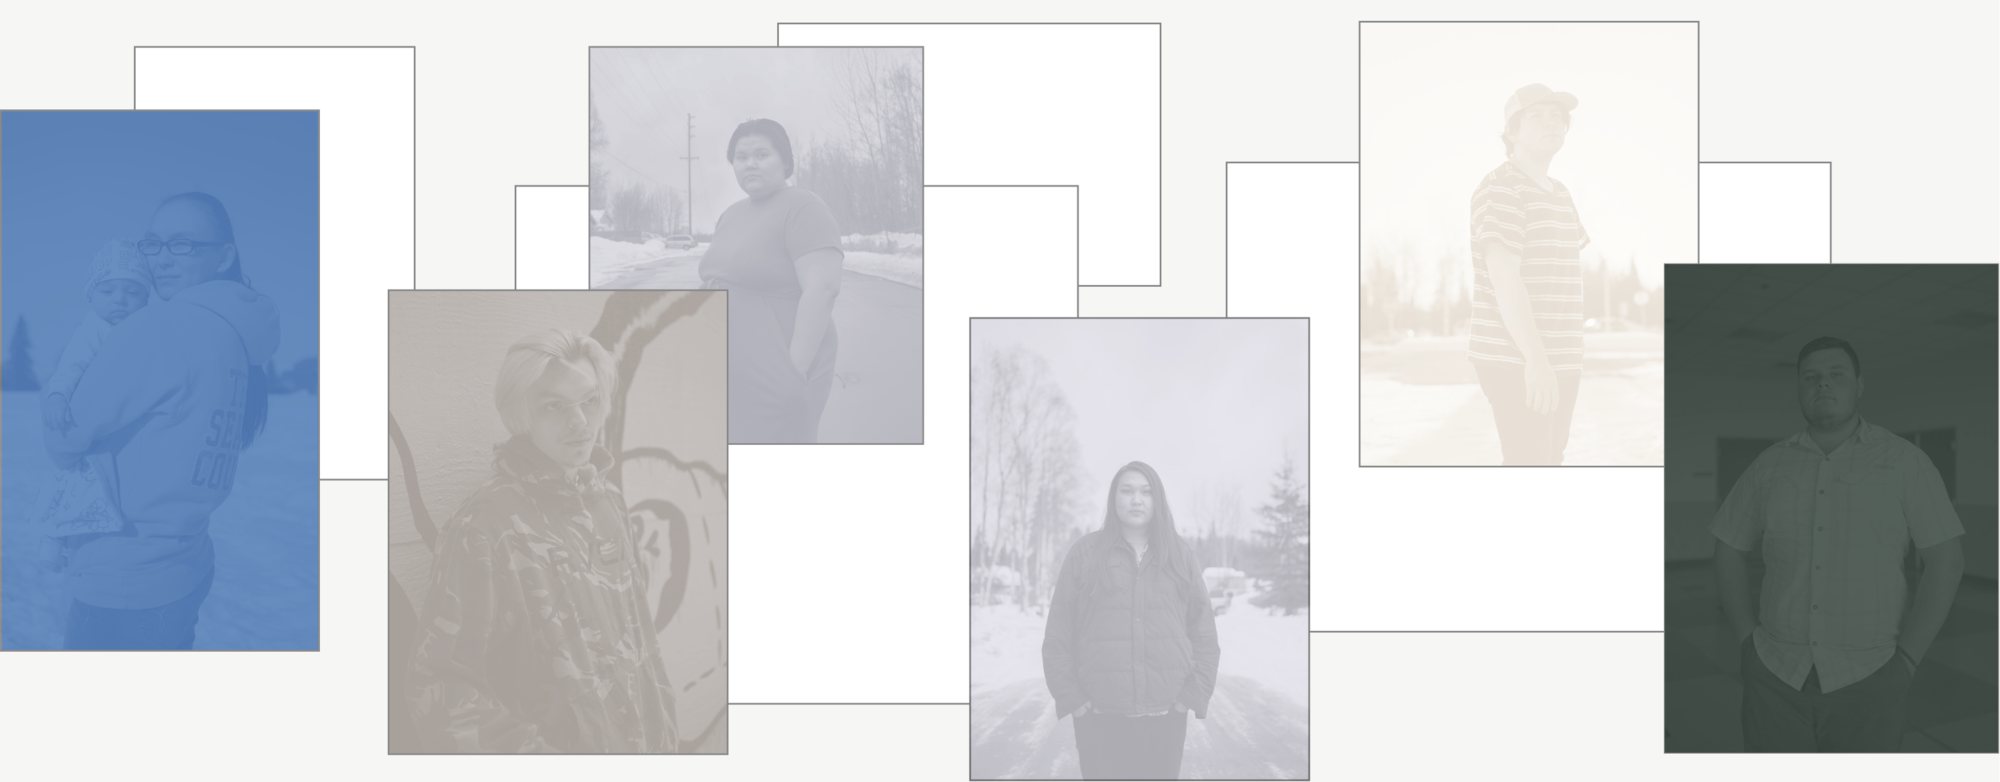 These current and former foster youth in Alaska say the state took Social Security benefits that belonged to them.